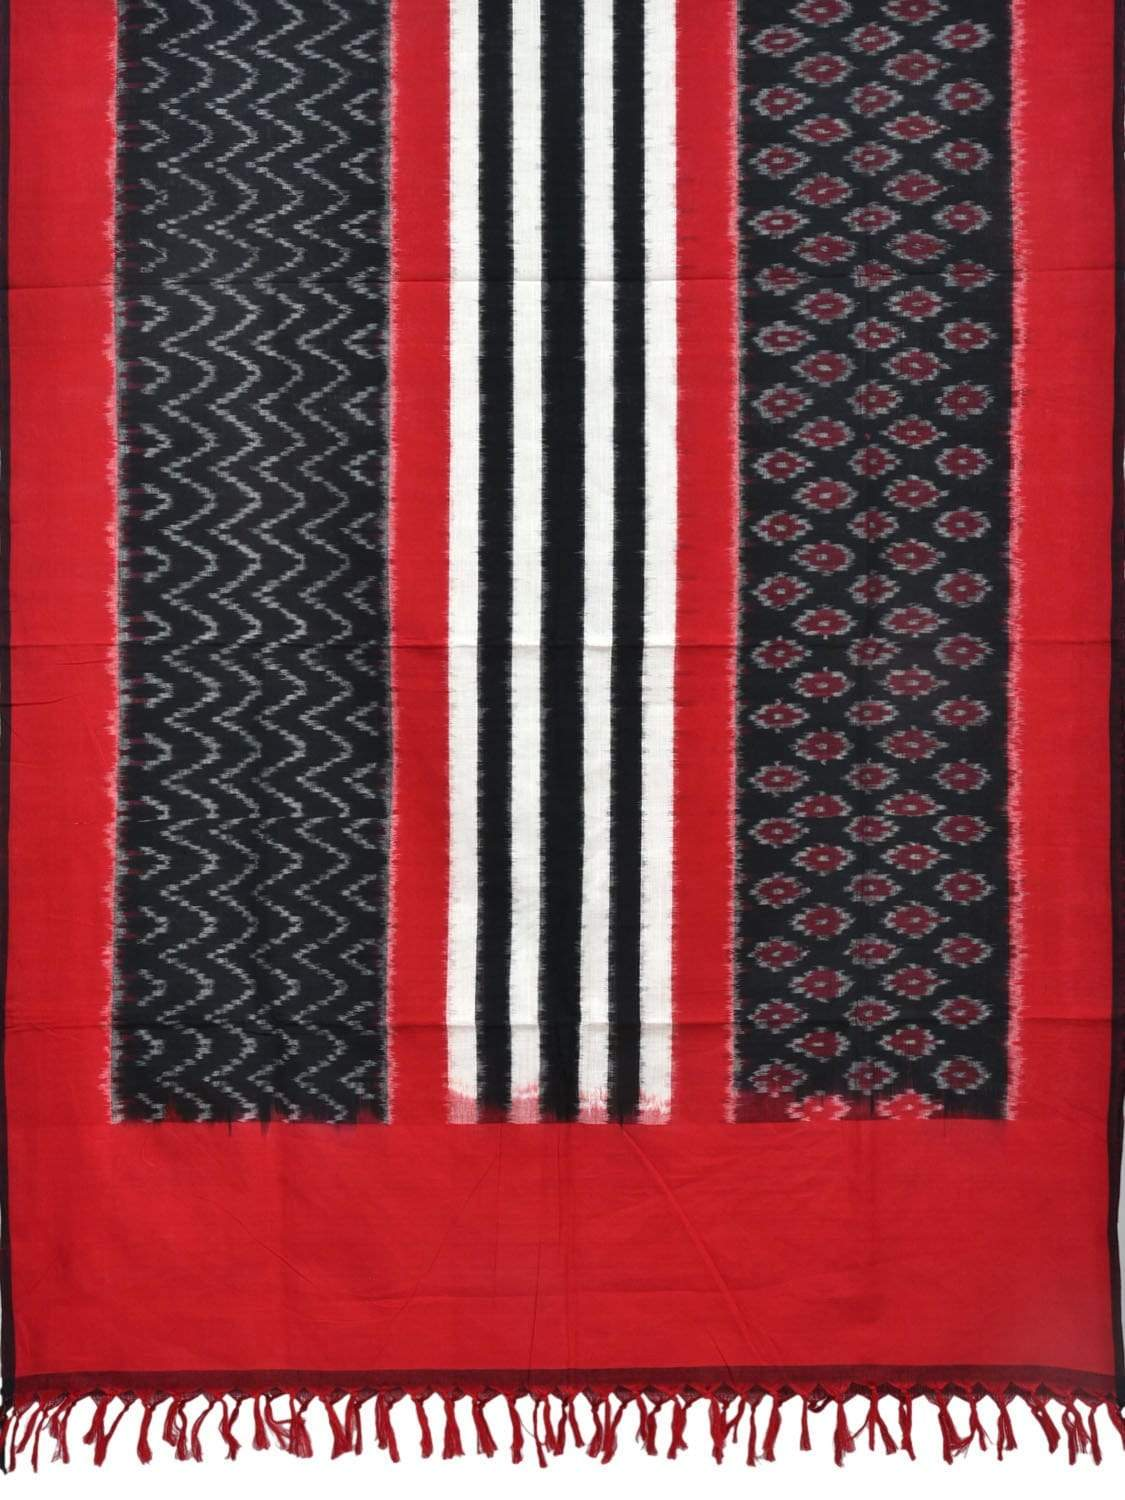 Red and Black Pochampally Ikat Cotton Handloom Dupatta with Triple Design ds1818